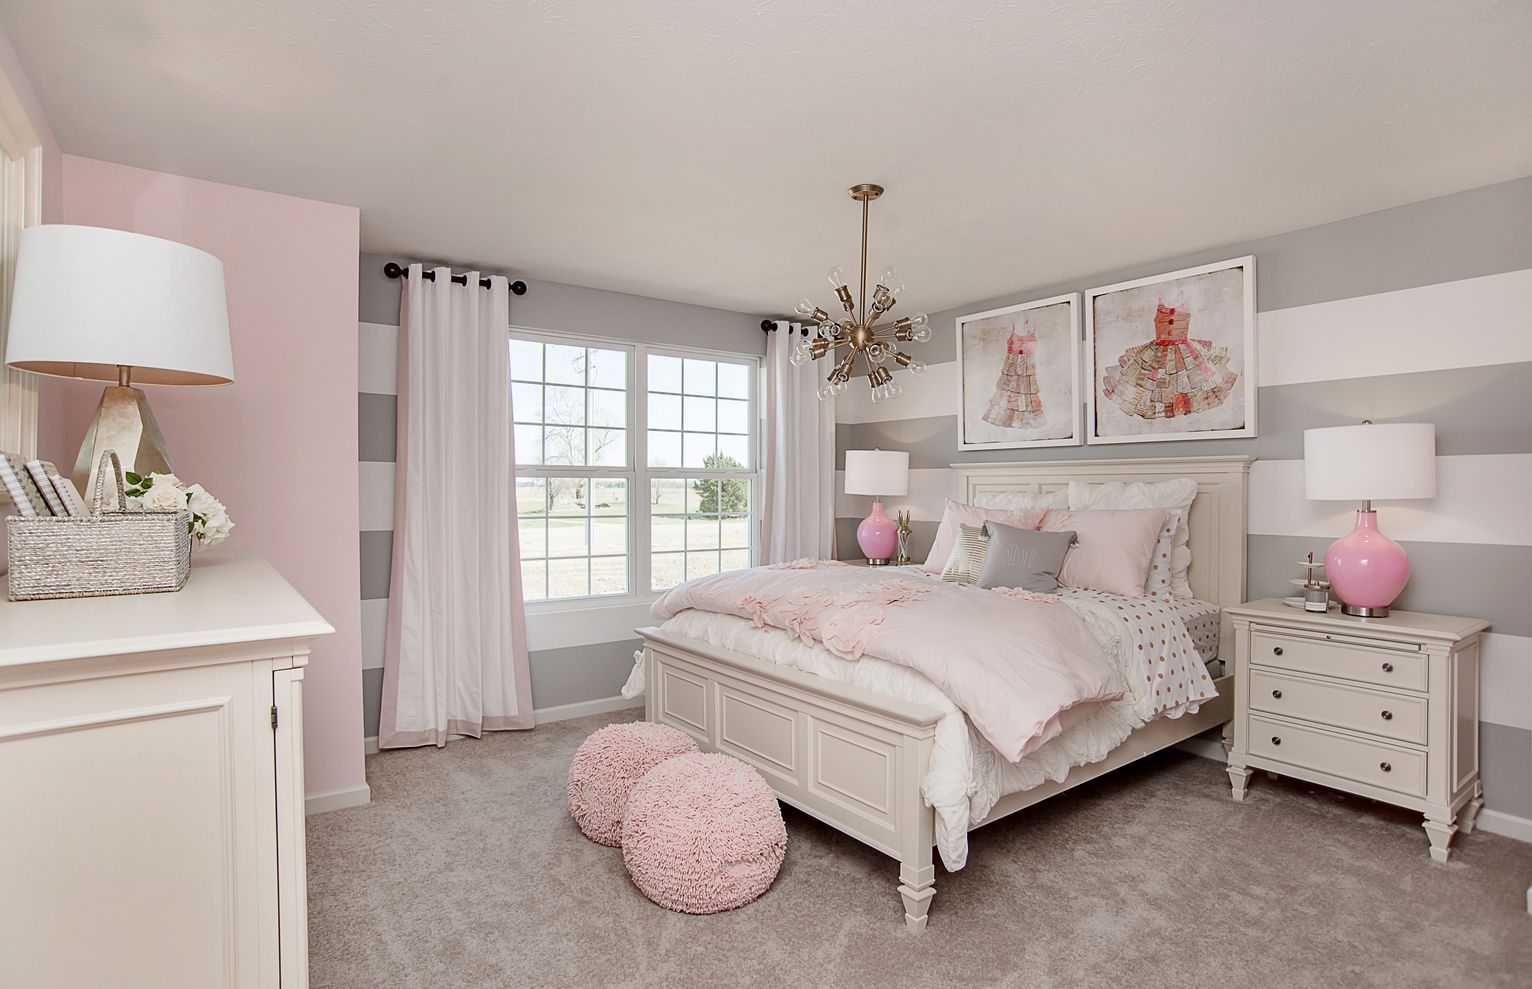 Cute apartment bedroom ideas home design - Cute bedroom design ideas bedroom design ideas ...